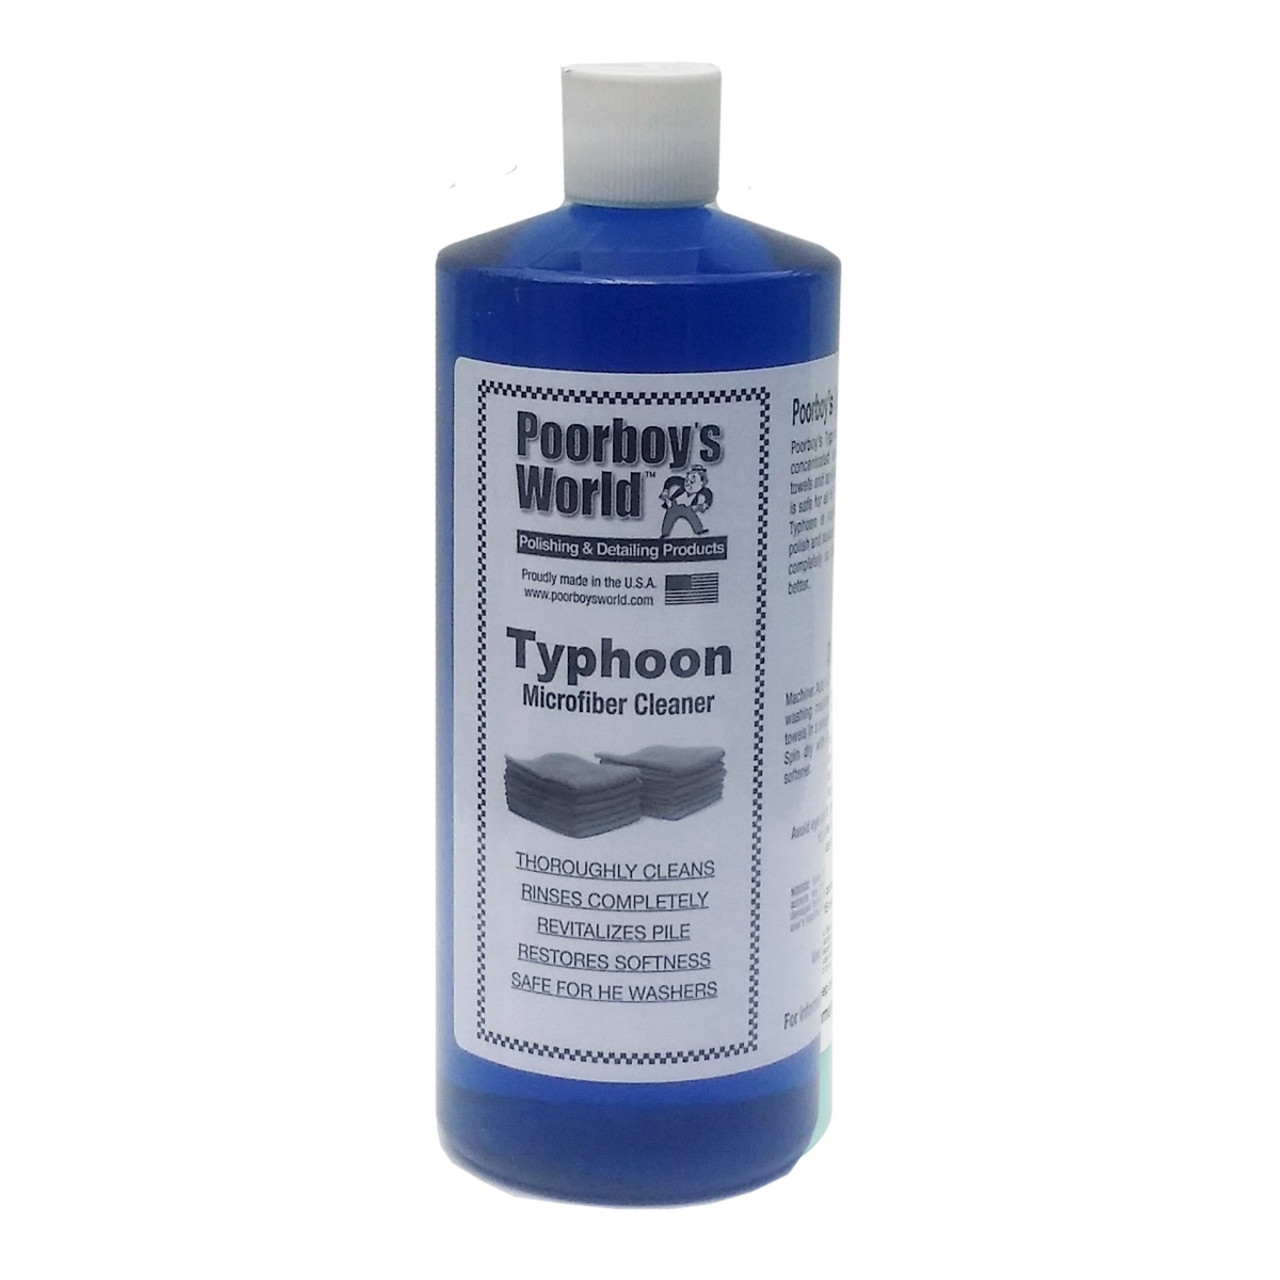 Poorboy's World Typhoon Microfiber Cleaner 32oz